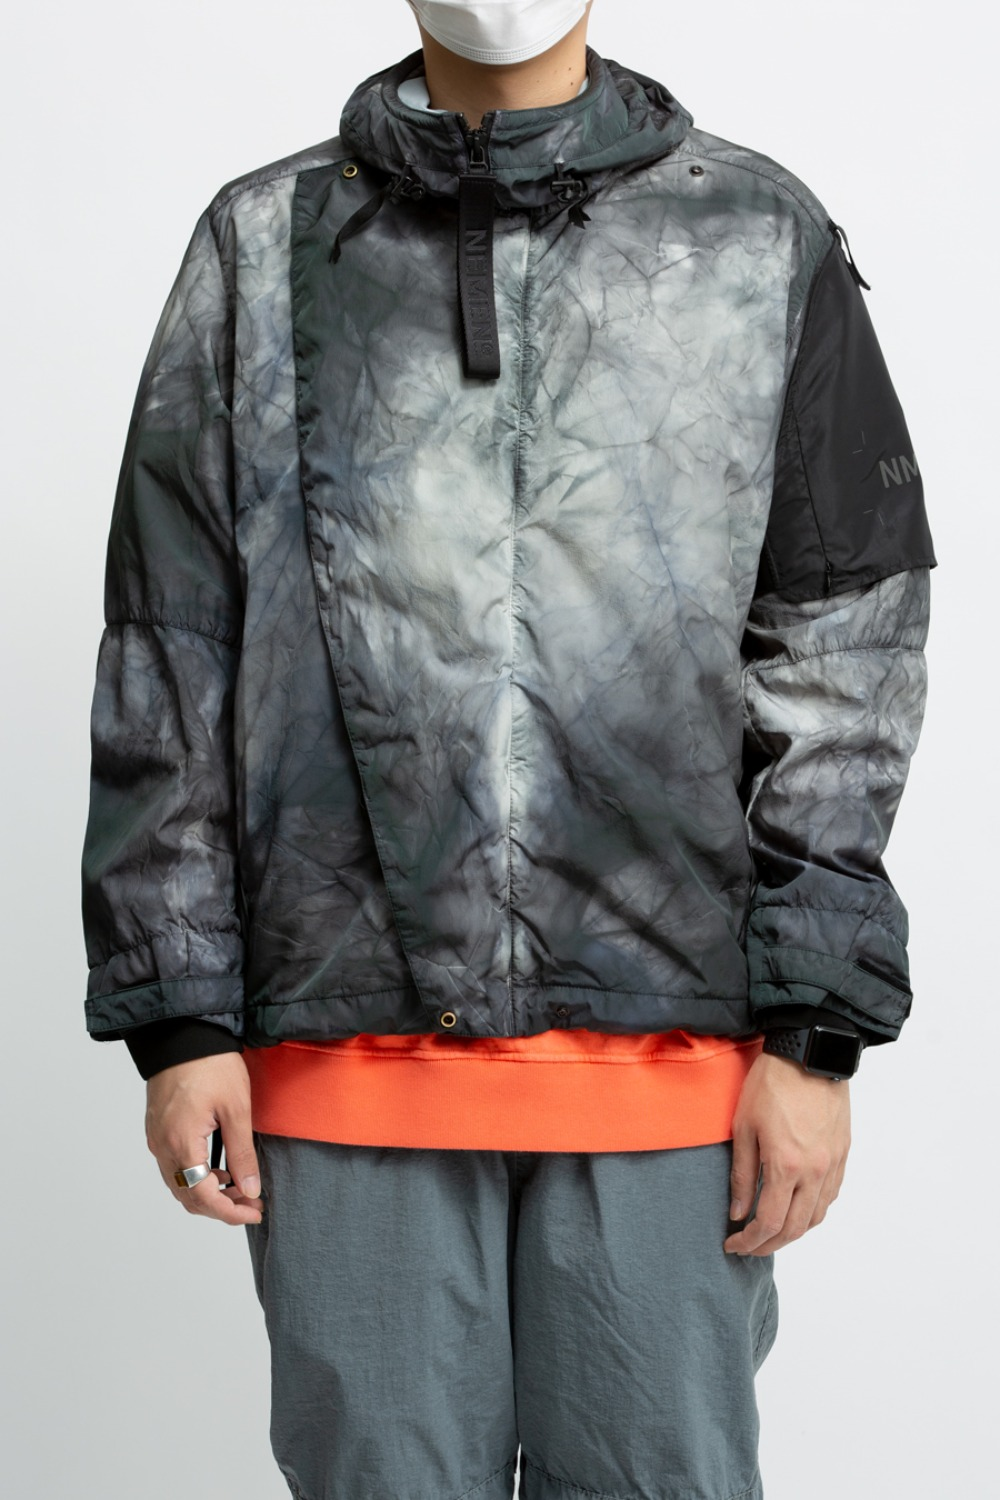 WOVEN DOES 3L TIE DYE JACKET ICE GREY